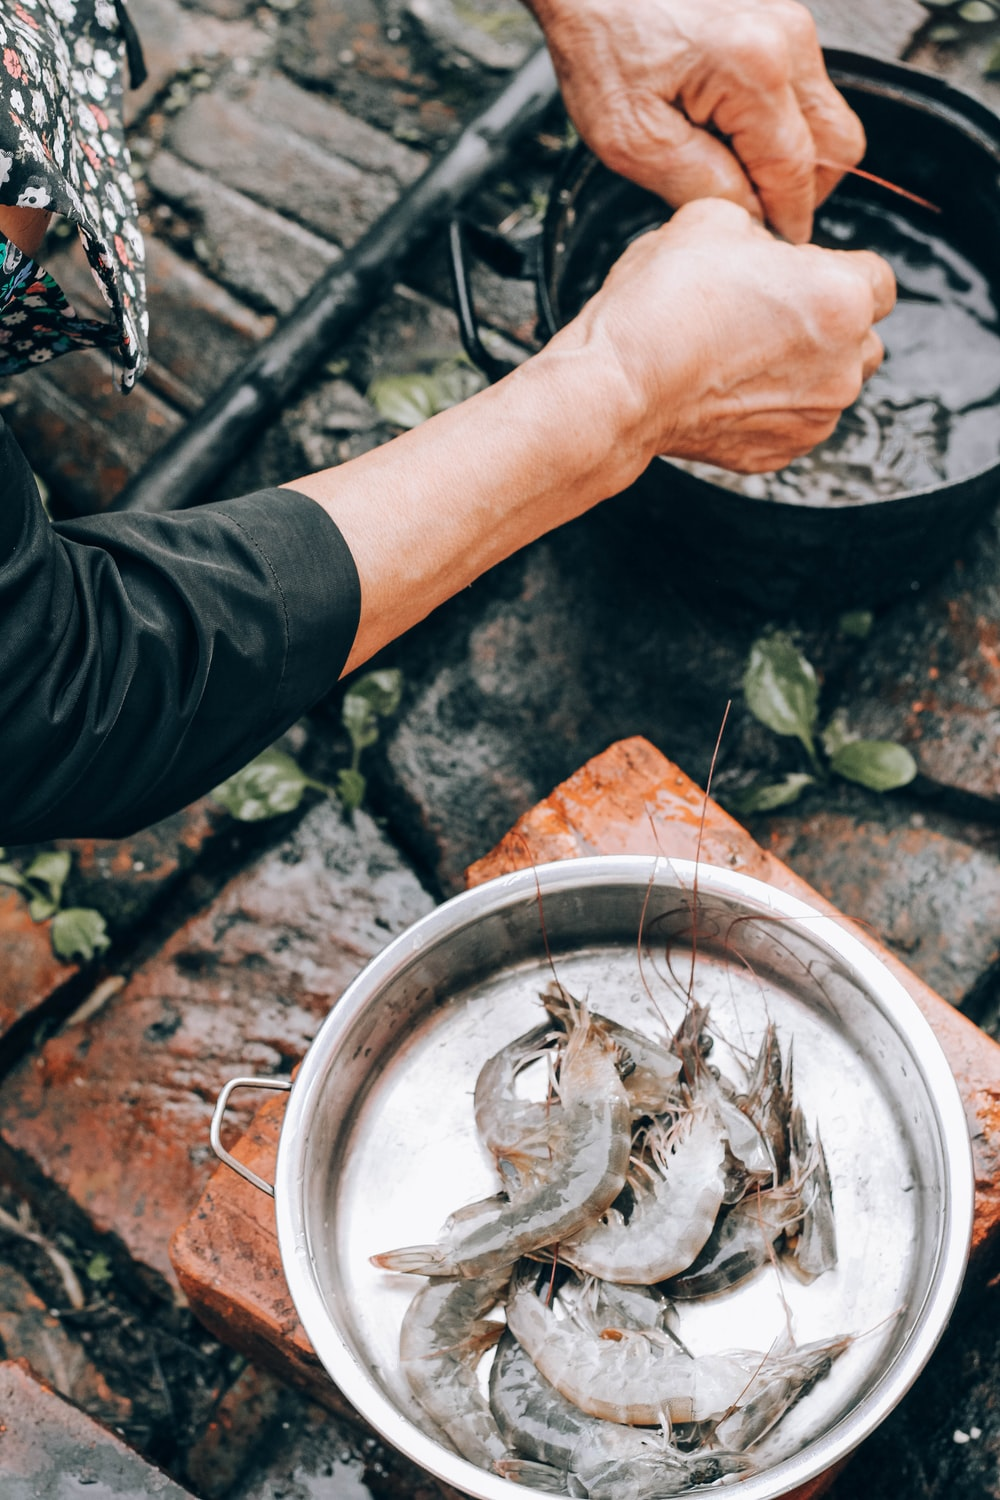 person holding stainless steel bowl with fish